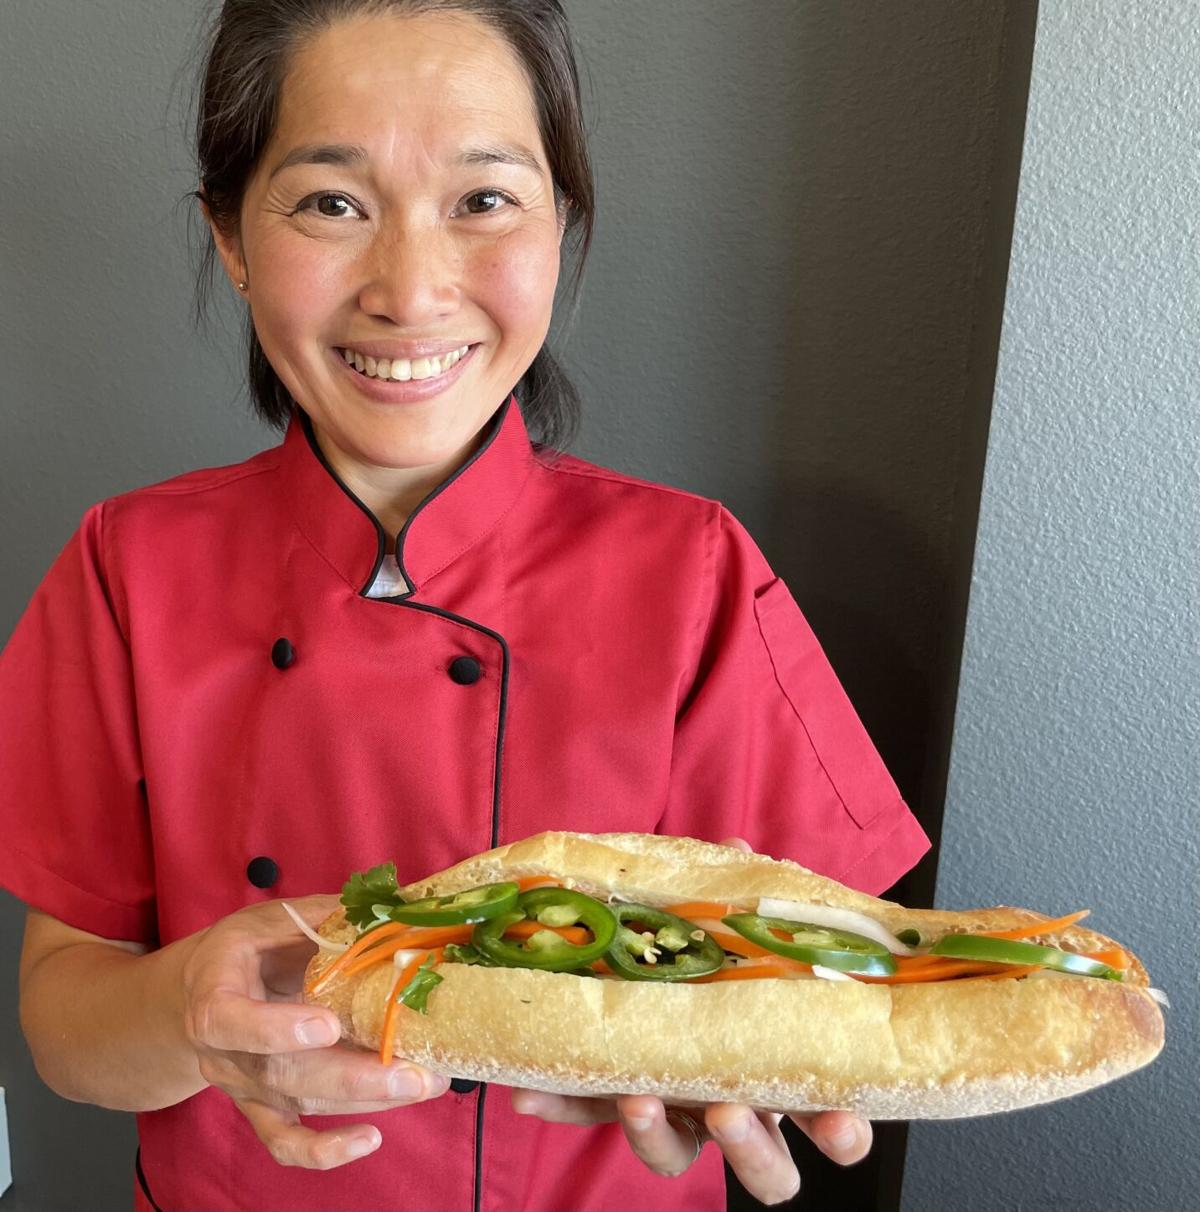 Colorado Springs Vietnamese chef loves her indoor grill for healthy cooking